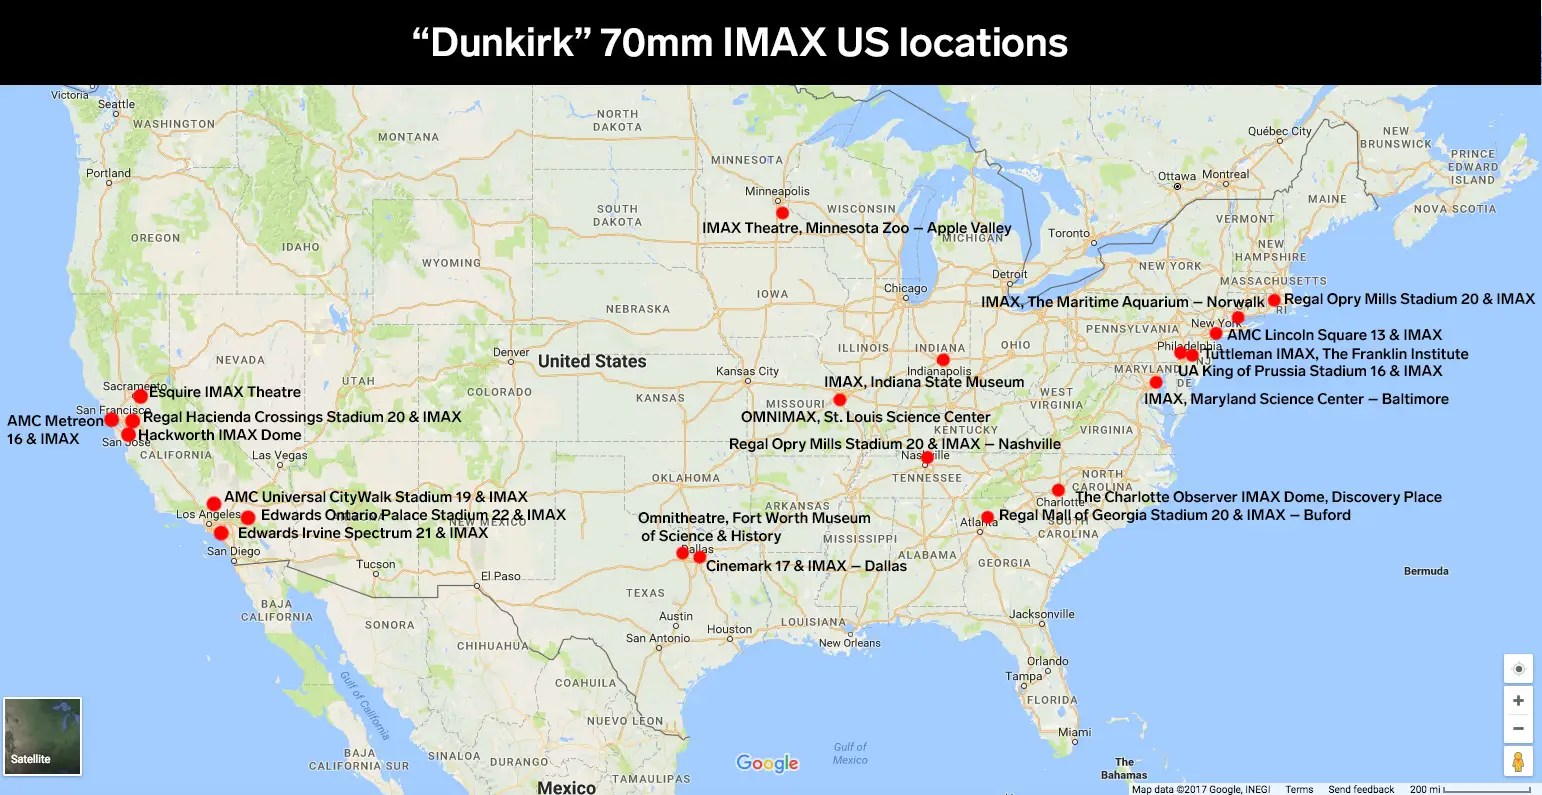 dunkirk 70mm imax locations